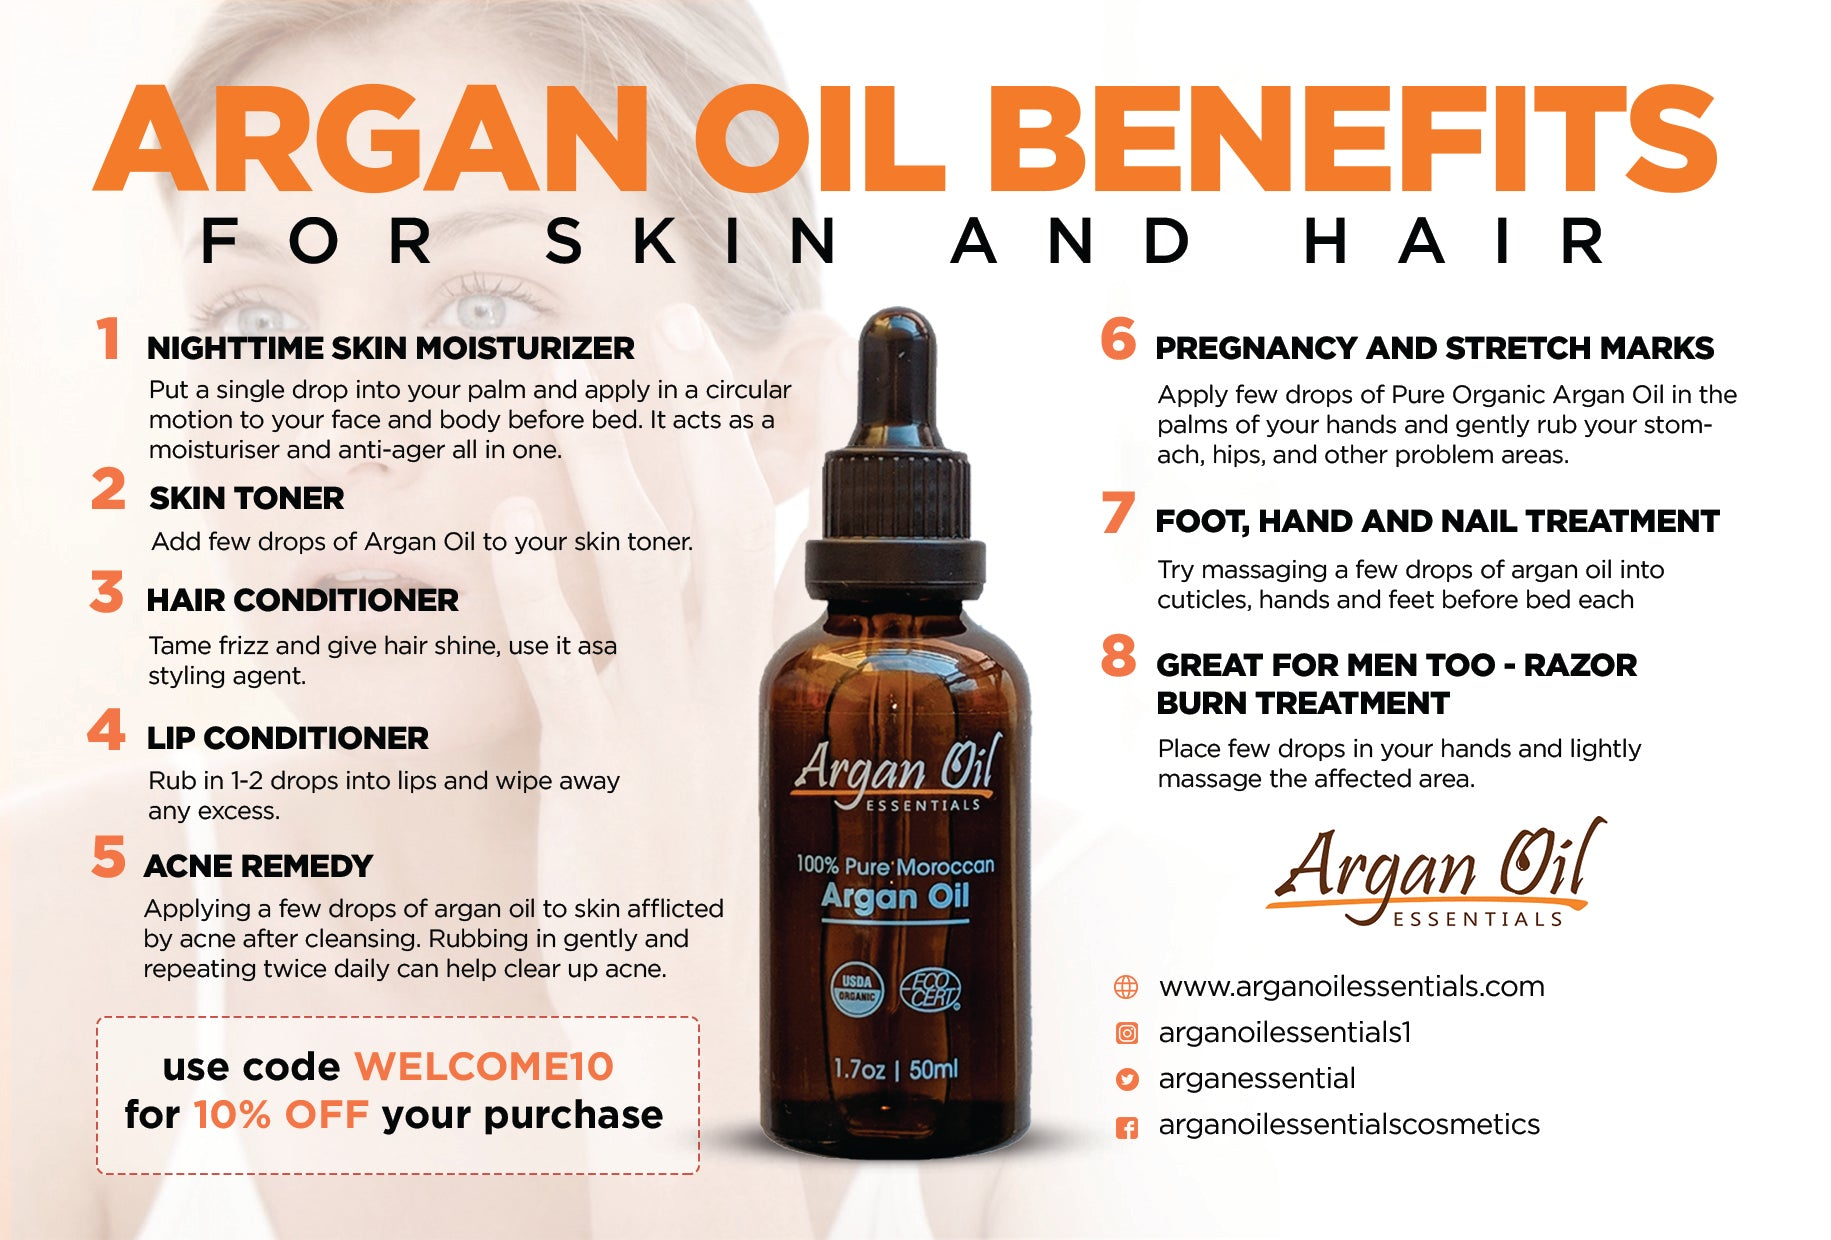 Argan Oil Benefits: Top 10 Argan Oil Benefits for Skin & Hair